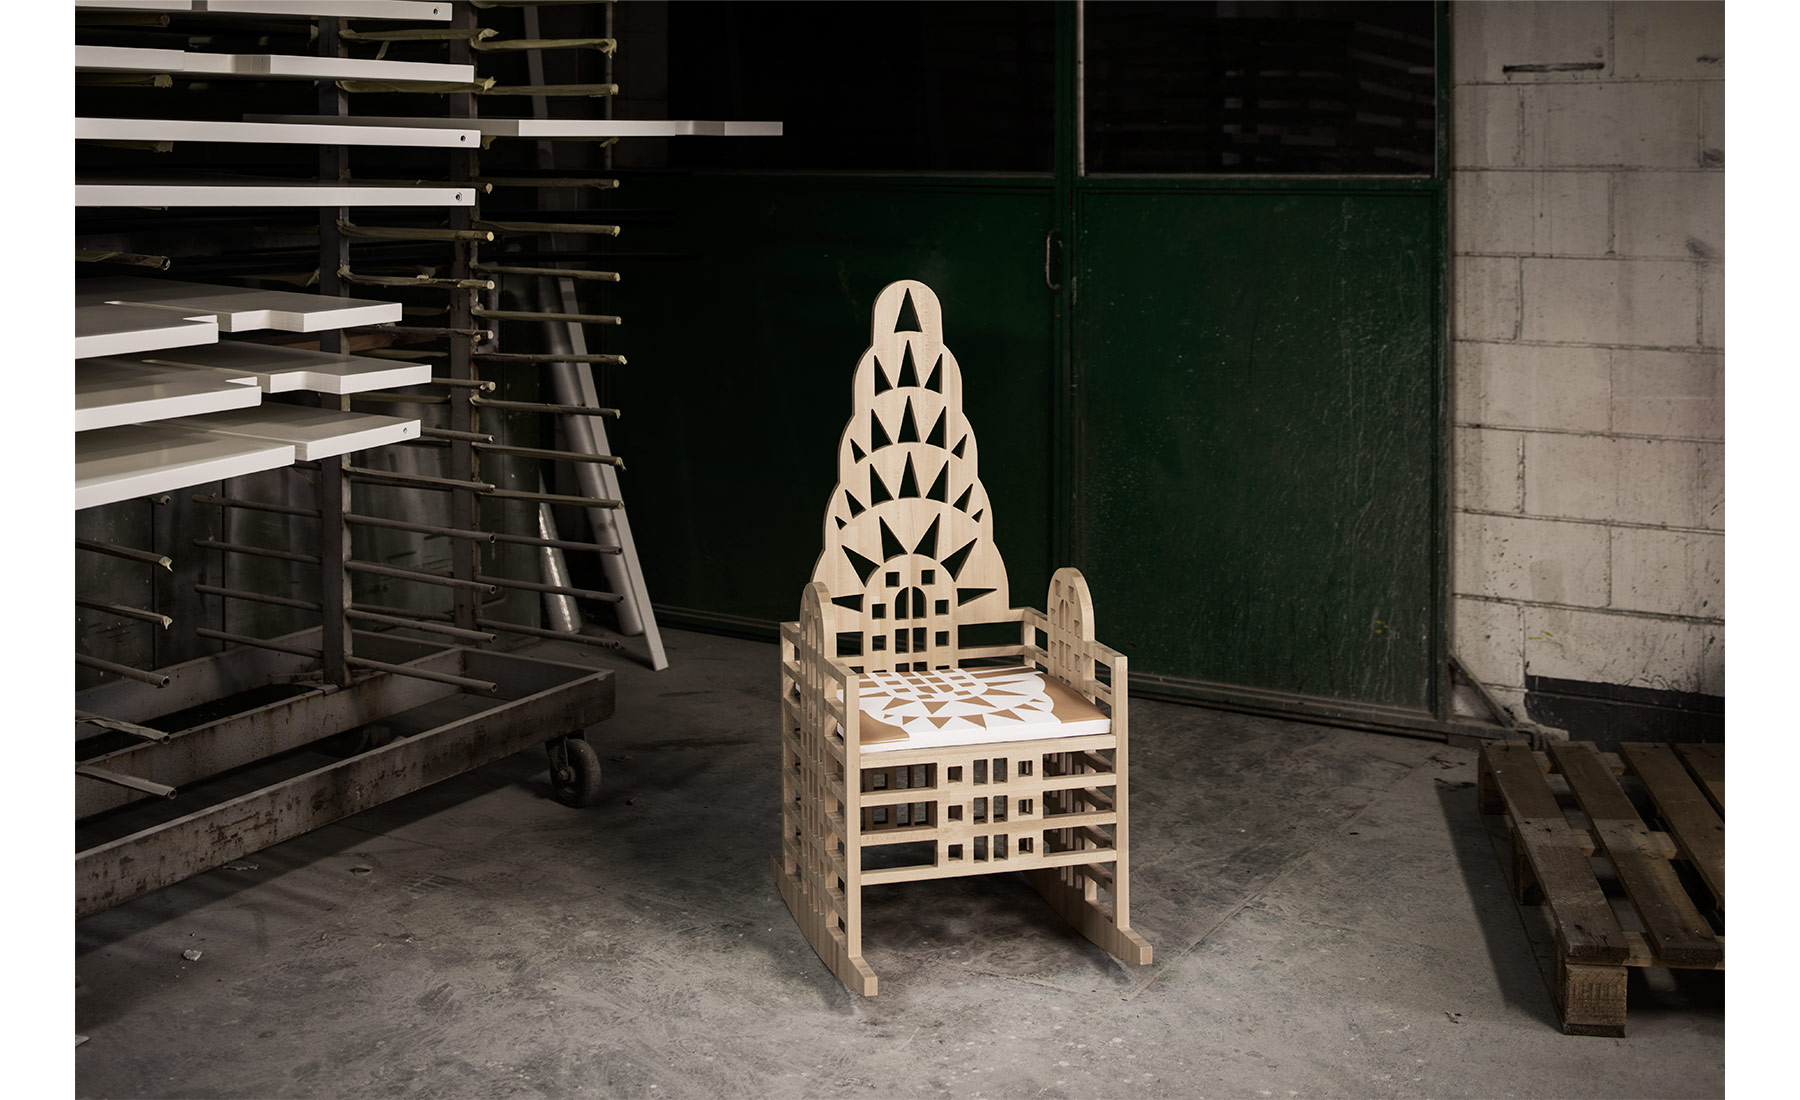 marco-tacchini-photographer-village-chairs_03